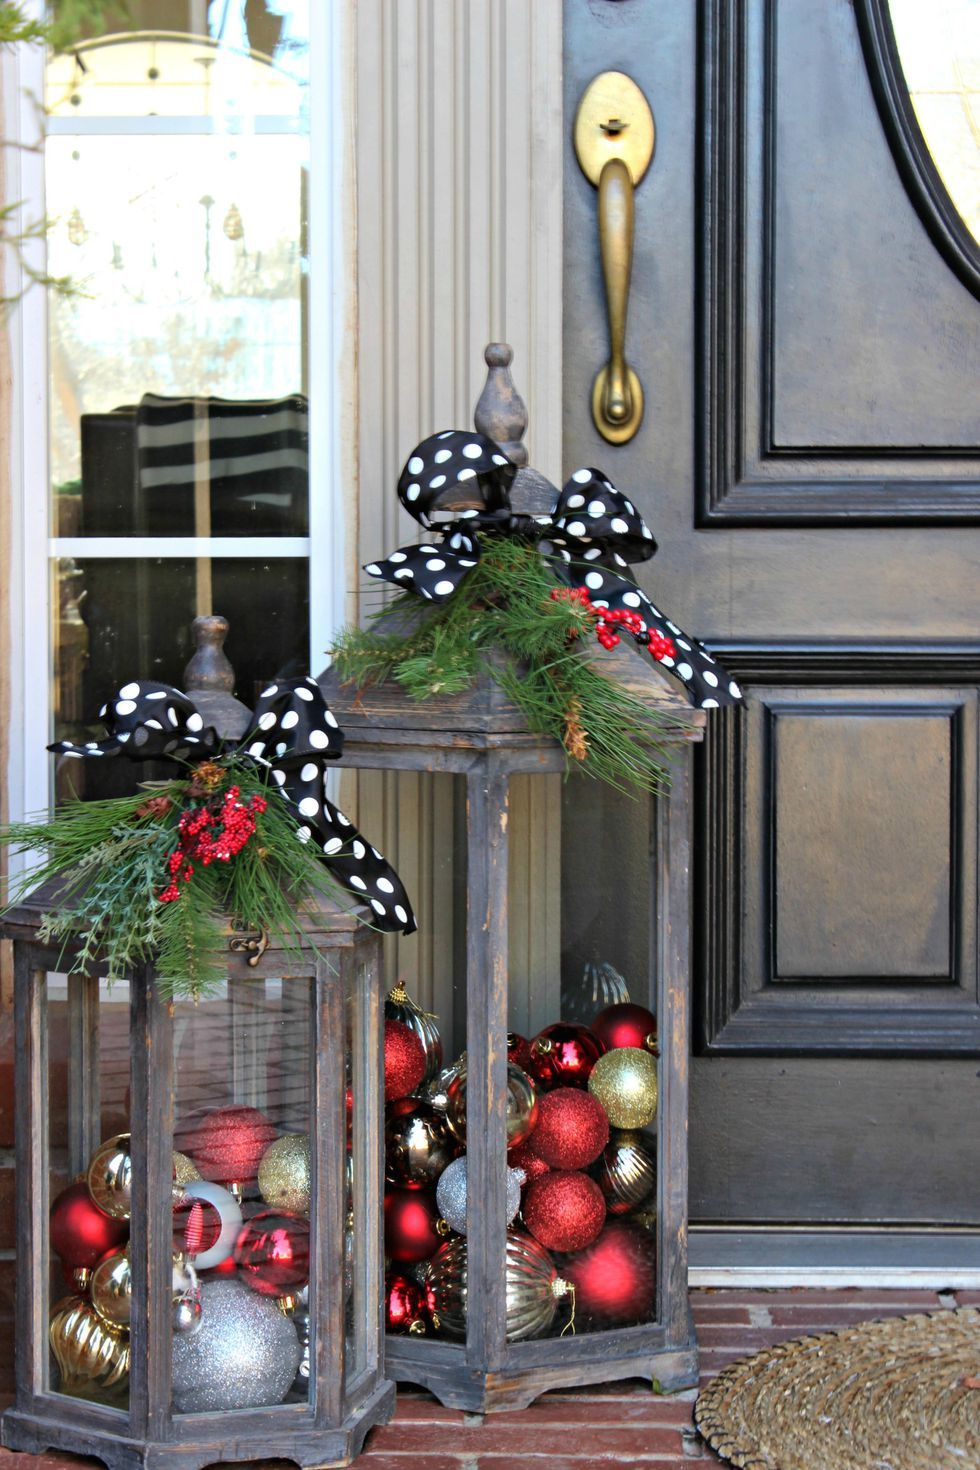 Stunning Holiday Decorating Ideas For Front Porch With Images Christmas Crafts Decorations Homemade Christmas Decorations Christmas Lanterns